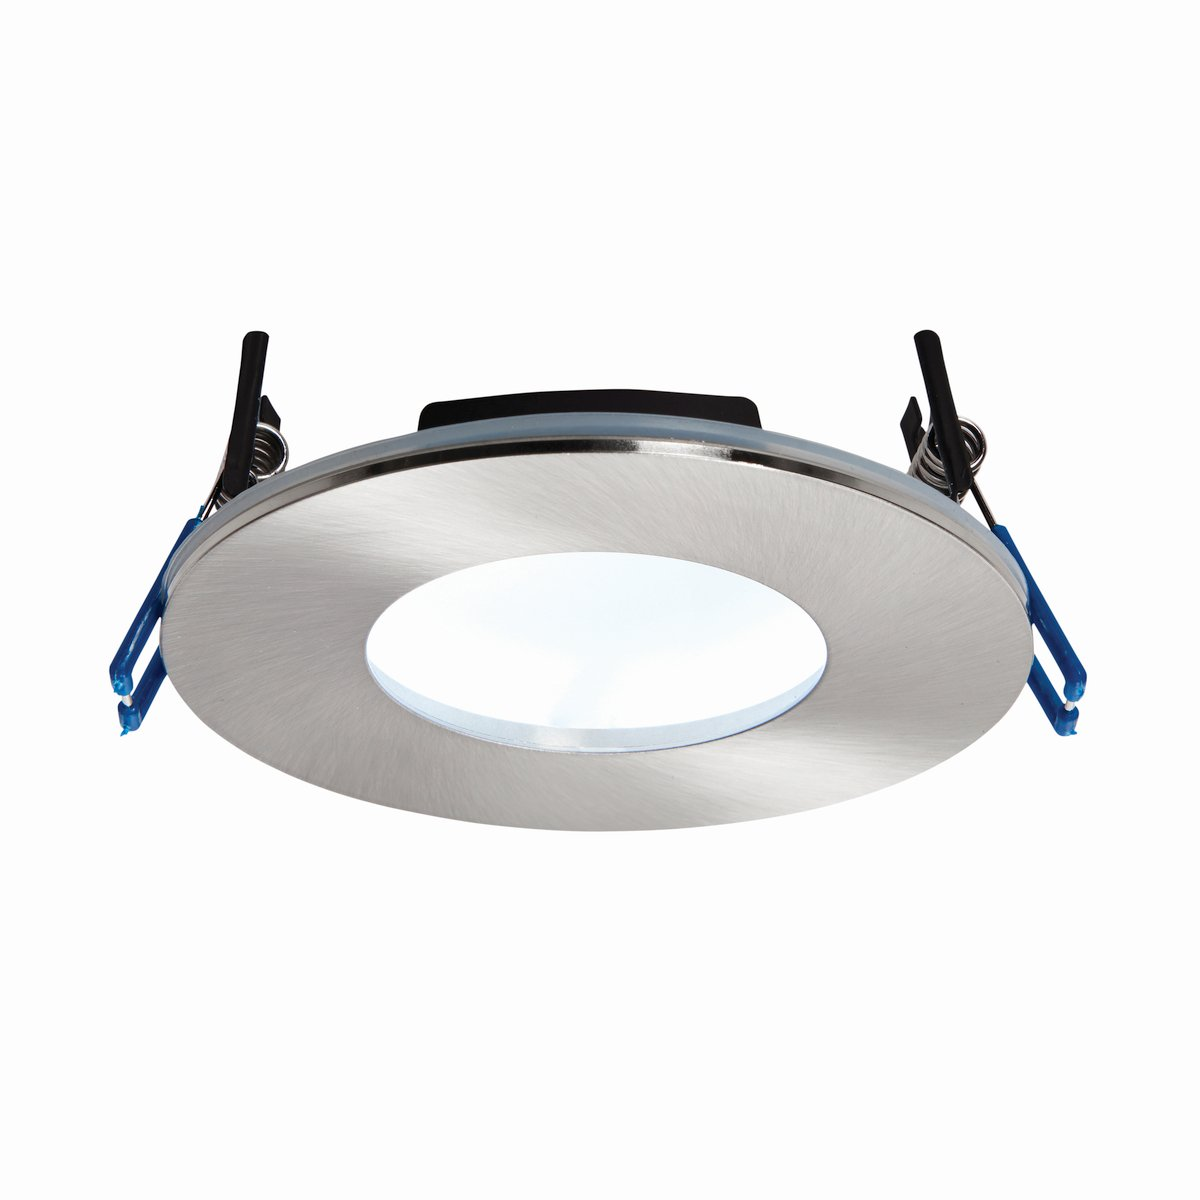 Chrome Finish Die Cast Aluminium Fire Rated Natural White LED Anti Glare Low Profile Ceiling Downlight Spotlight IP65 Rated for Bathroom, Shower, Kitchen, Lounge etc.